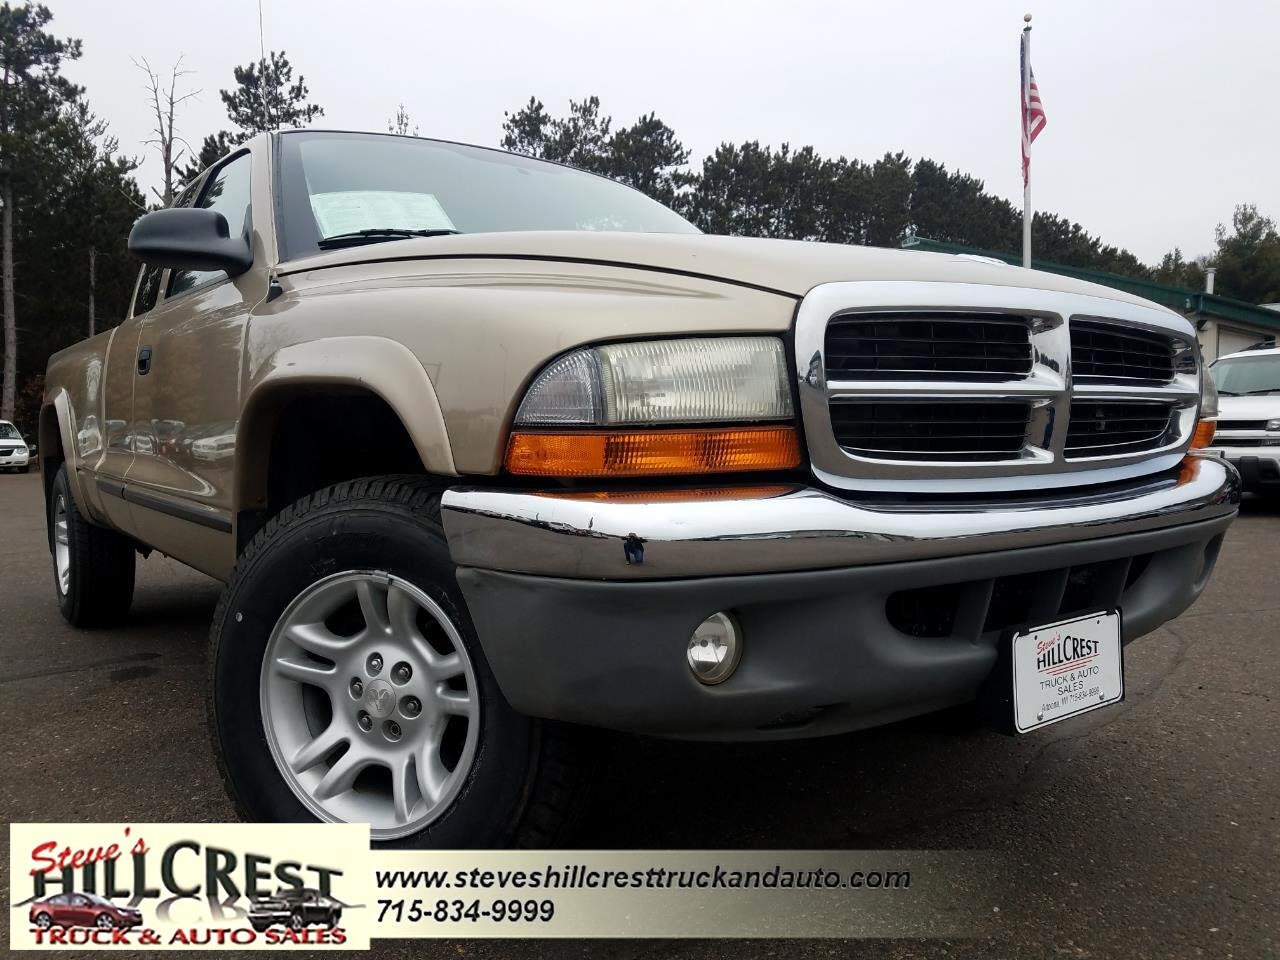 2004 Dodge Dakota SLT Club Cab 4WD